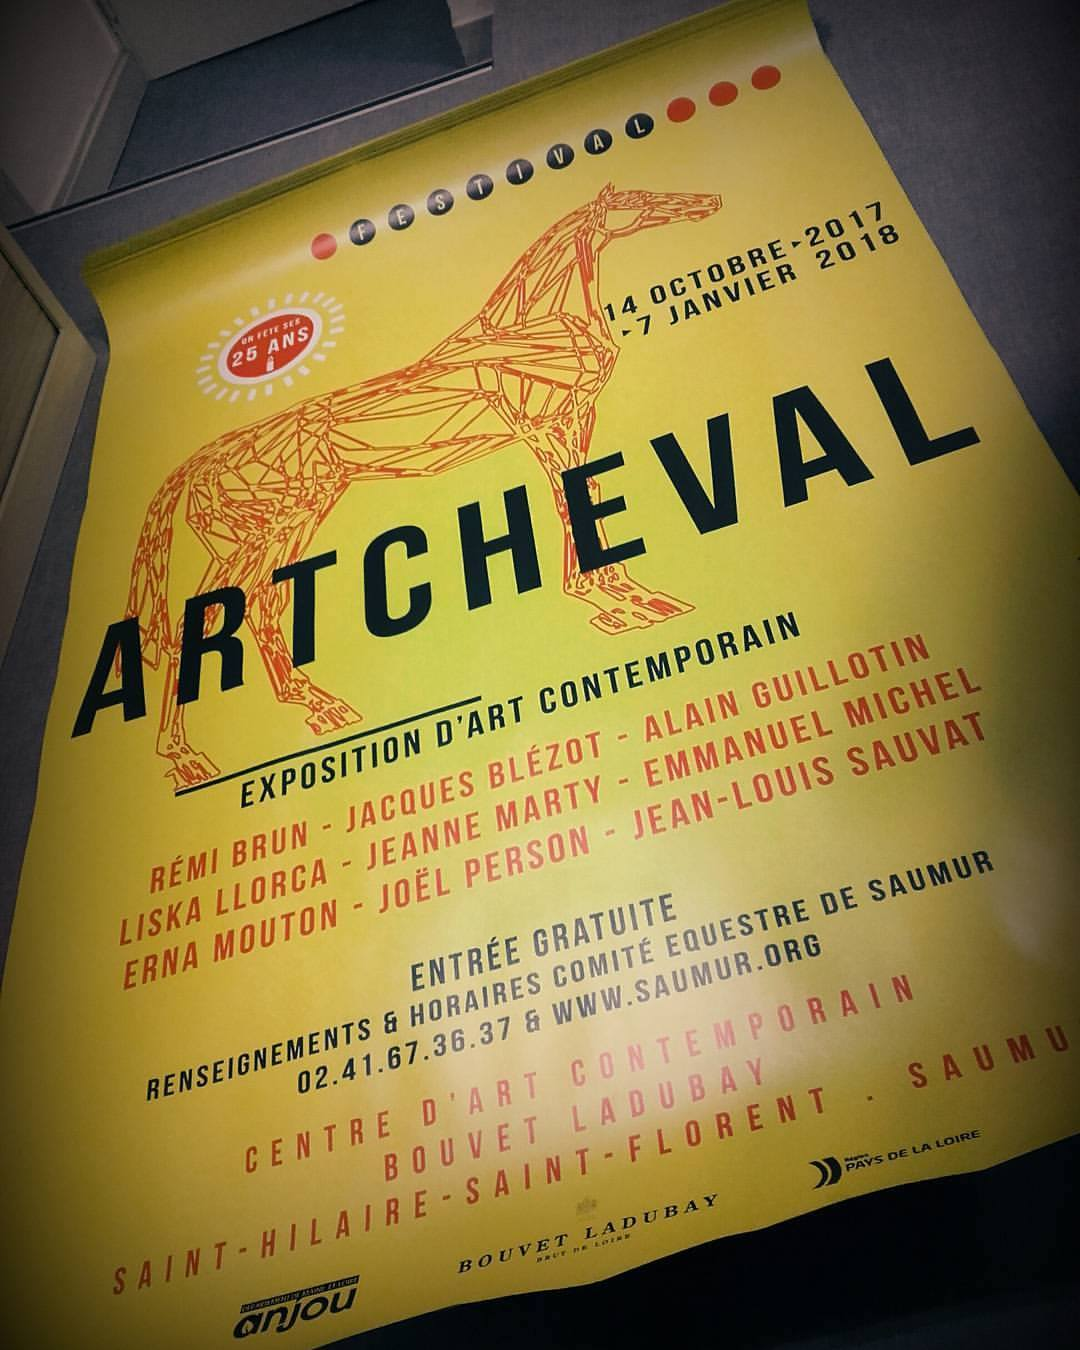 Artcheval – octobre 2017 – parisART